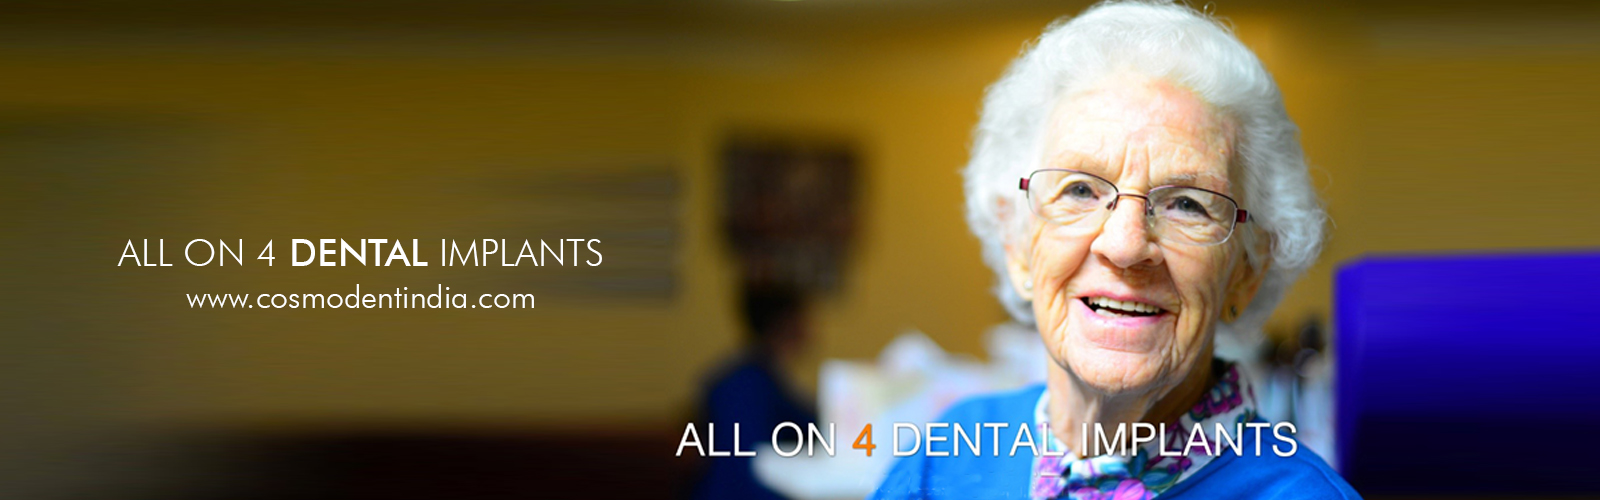 all-on-4-dental-implants-in-india